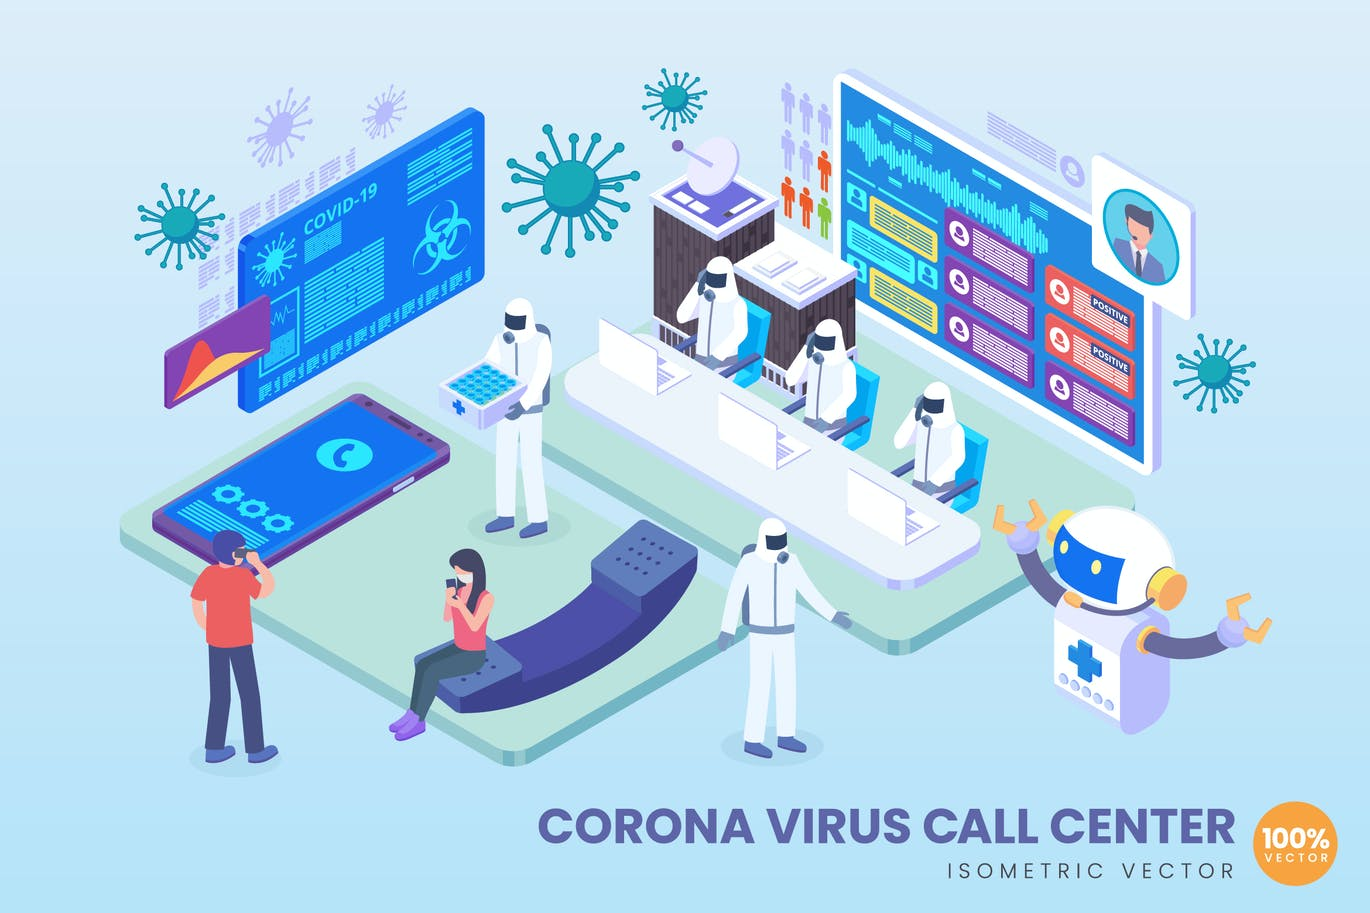 Isometric Corona Virus Call Center Vector Concept